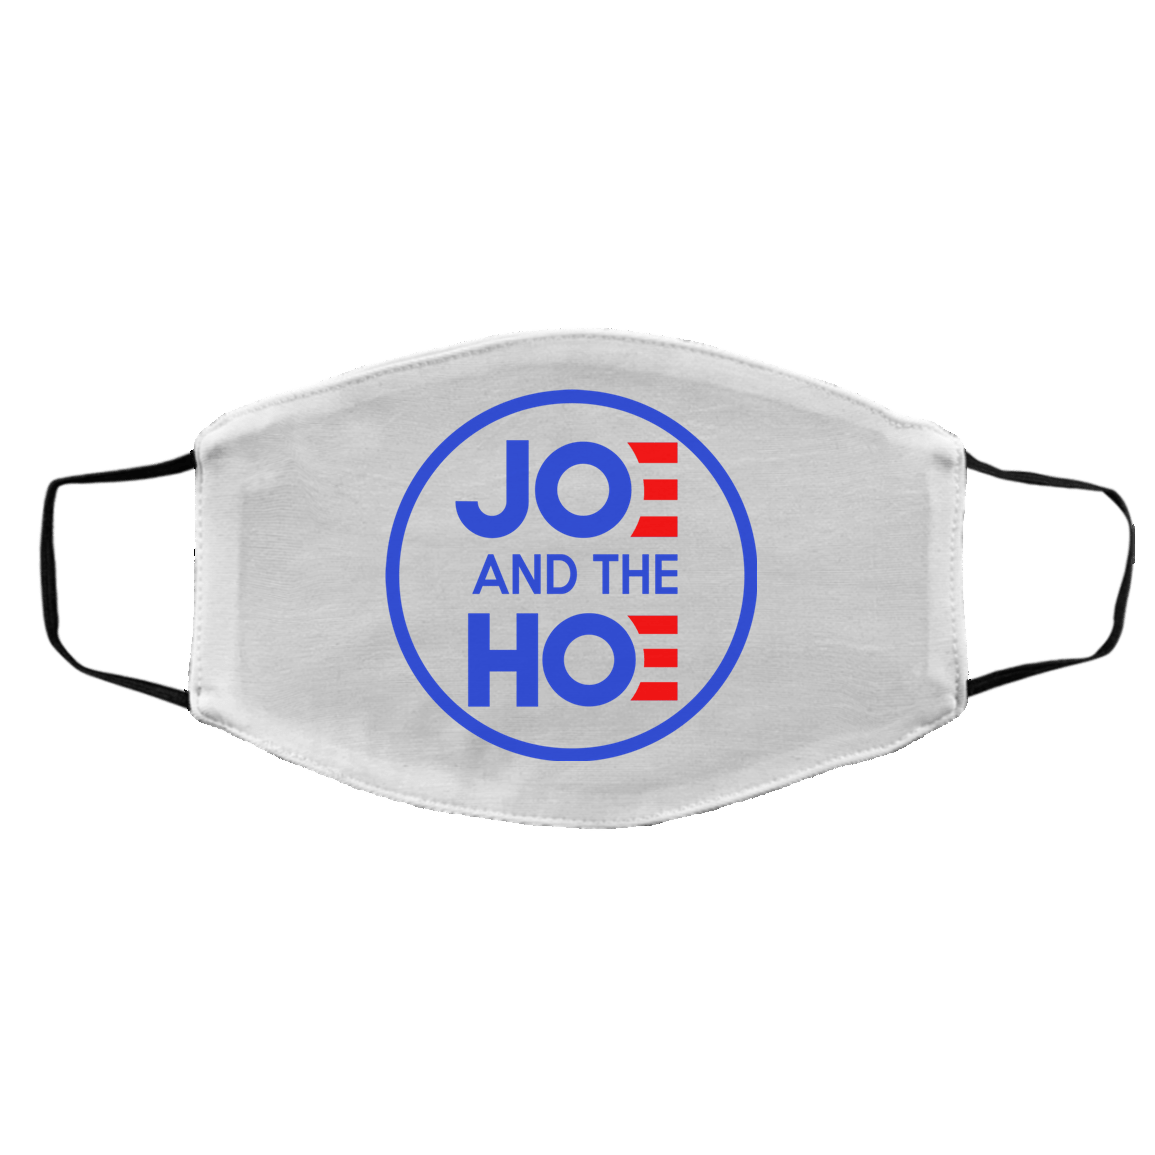 Jo And The Ho Joe And The Hoe Face Mask 1274-13170-88768013-59058 - Tee Ript